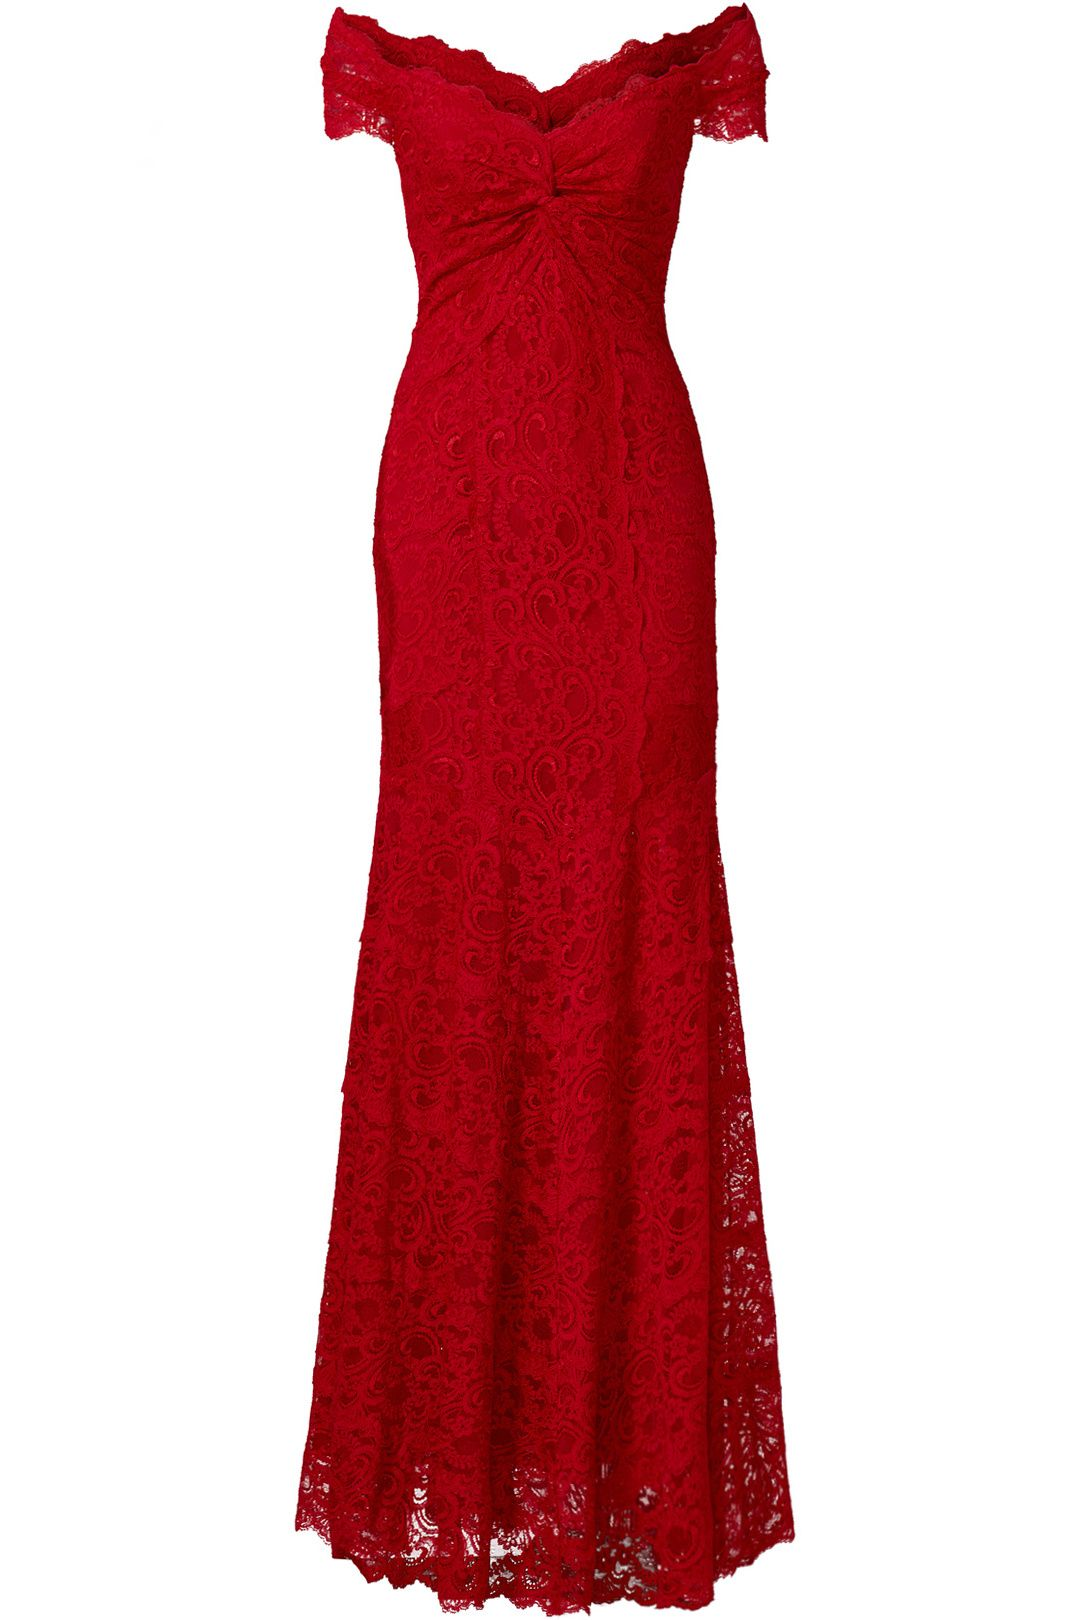 Red Tempted By You Gown   Nicole miller, Gowns and Ball gowns